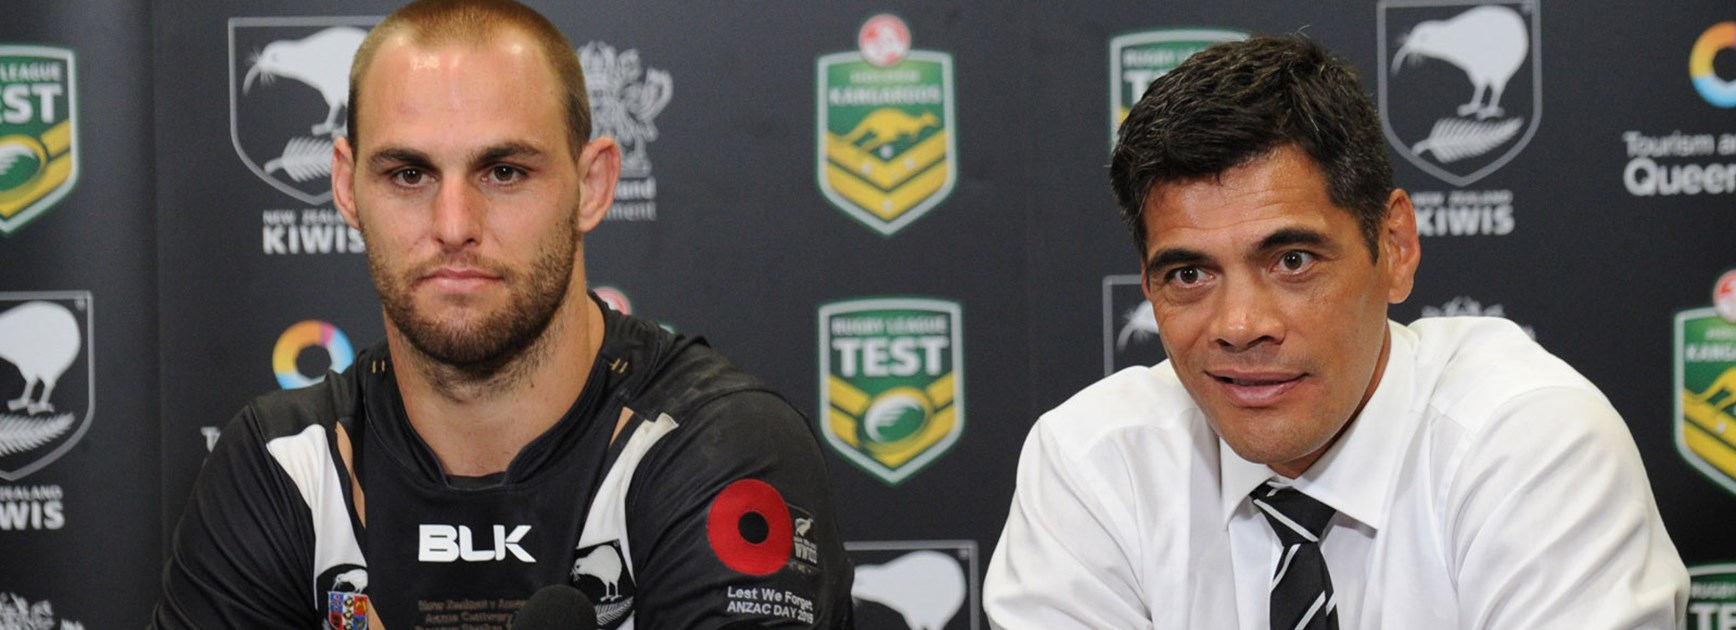 Kiwis coach Stephen Kearney and captain Simon Mannering after their side's win over the Kangaroos.